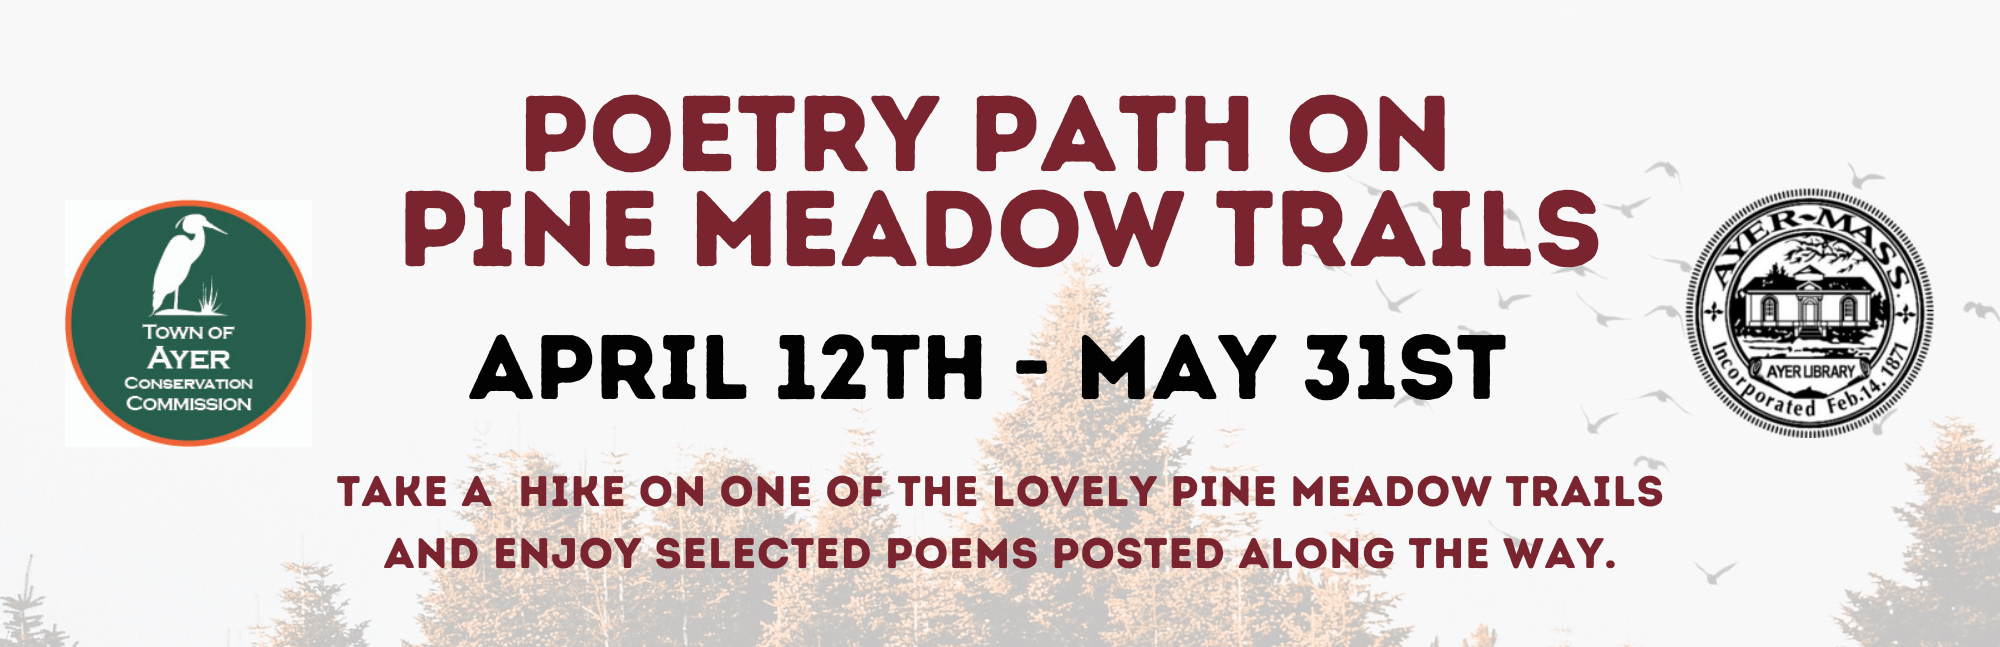 Poetry Path Banner